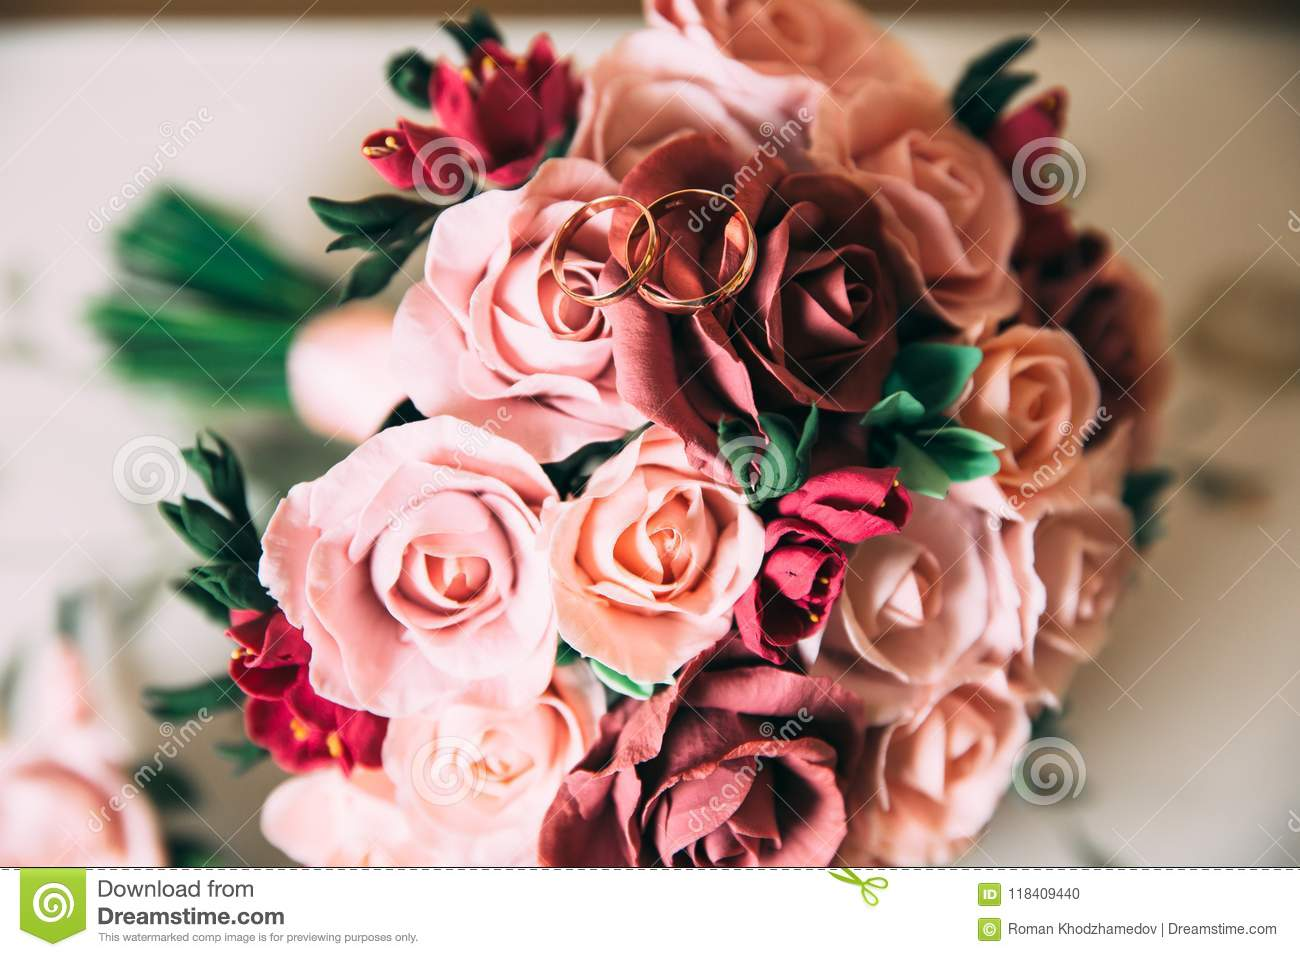 A Wedding Bouquet Of Red And Pink Roses Lies On A Wooden Vintage